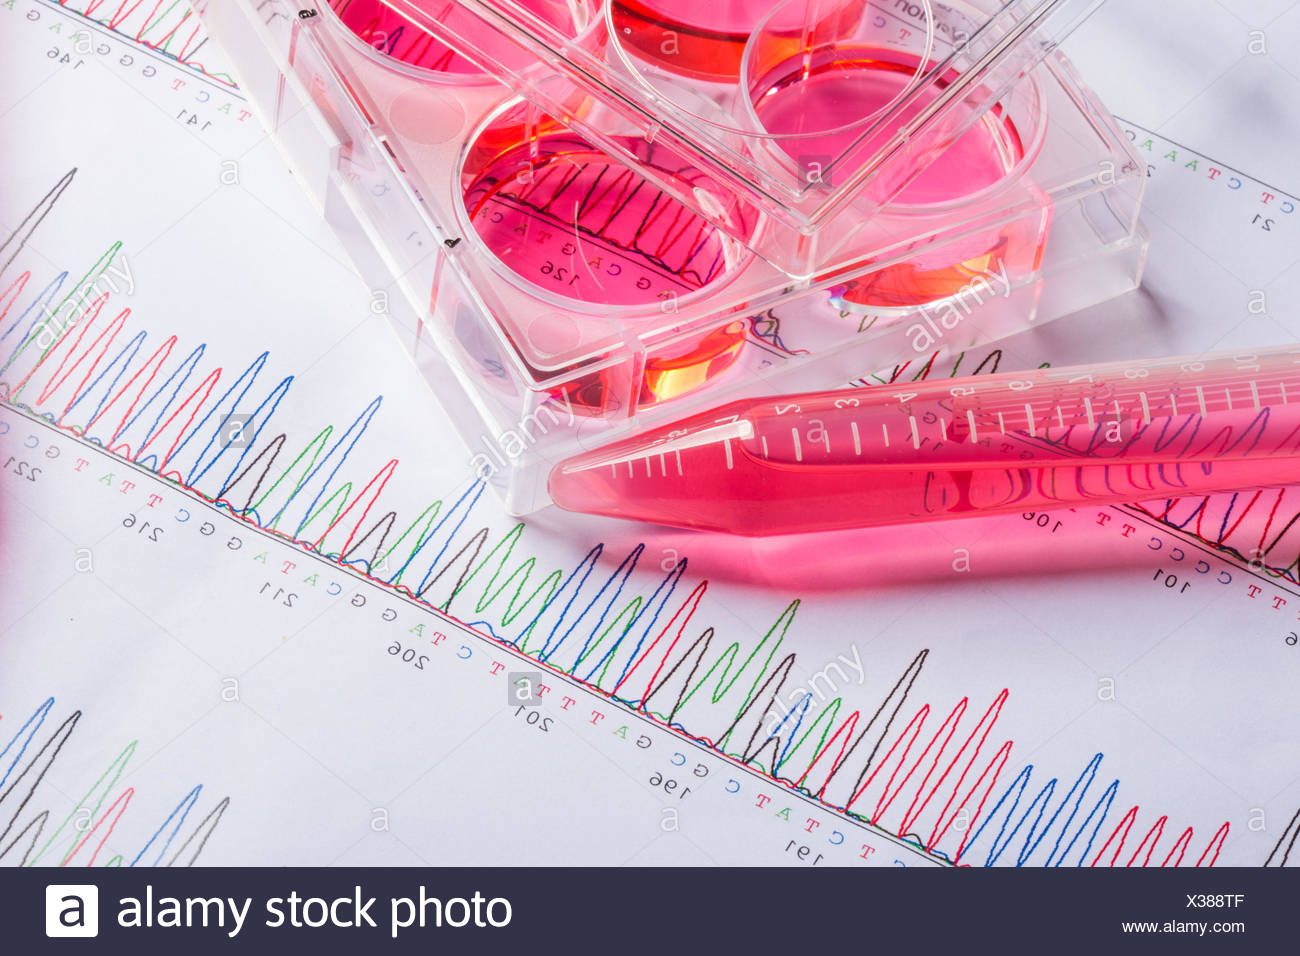 Genetic research. - Stock Image